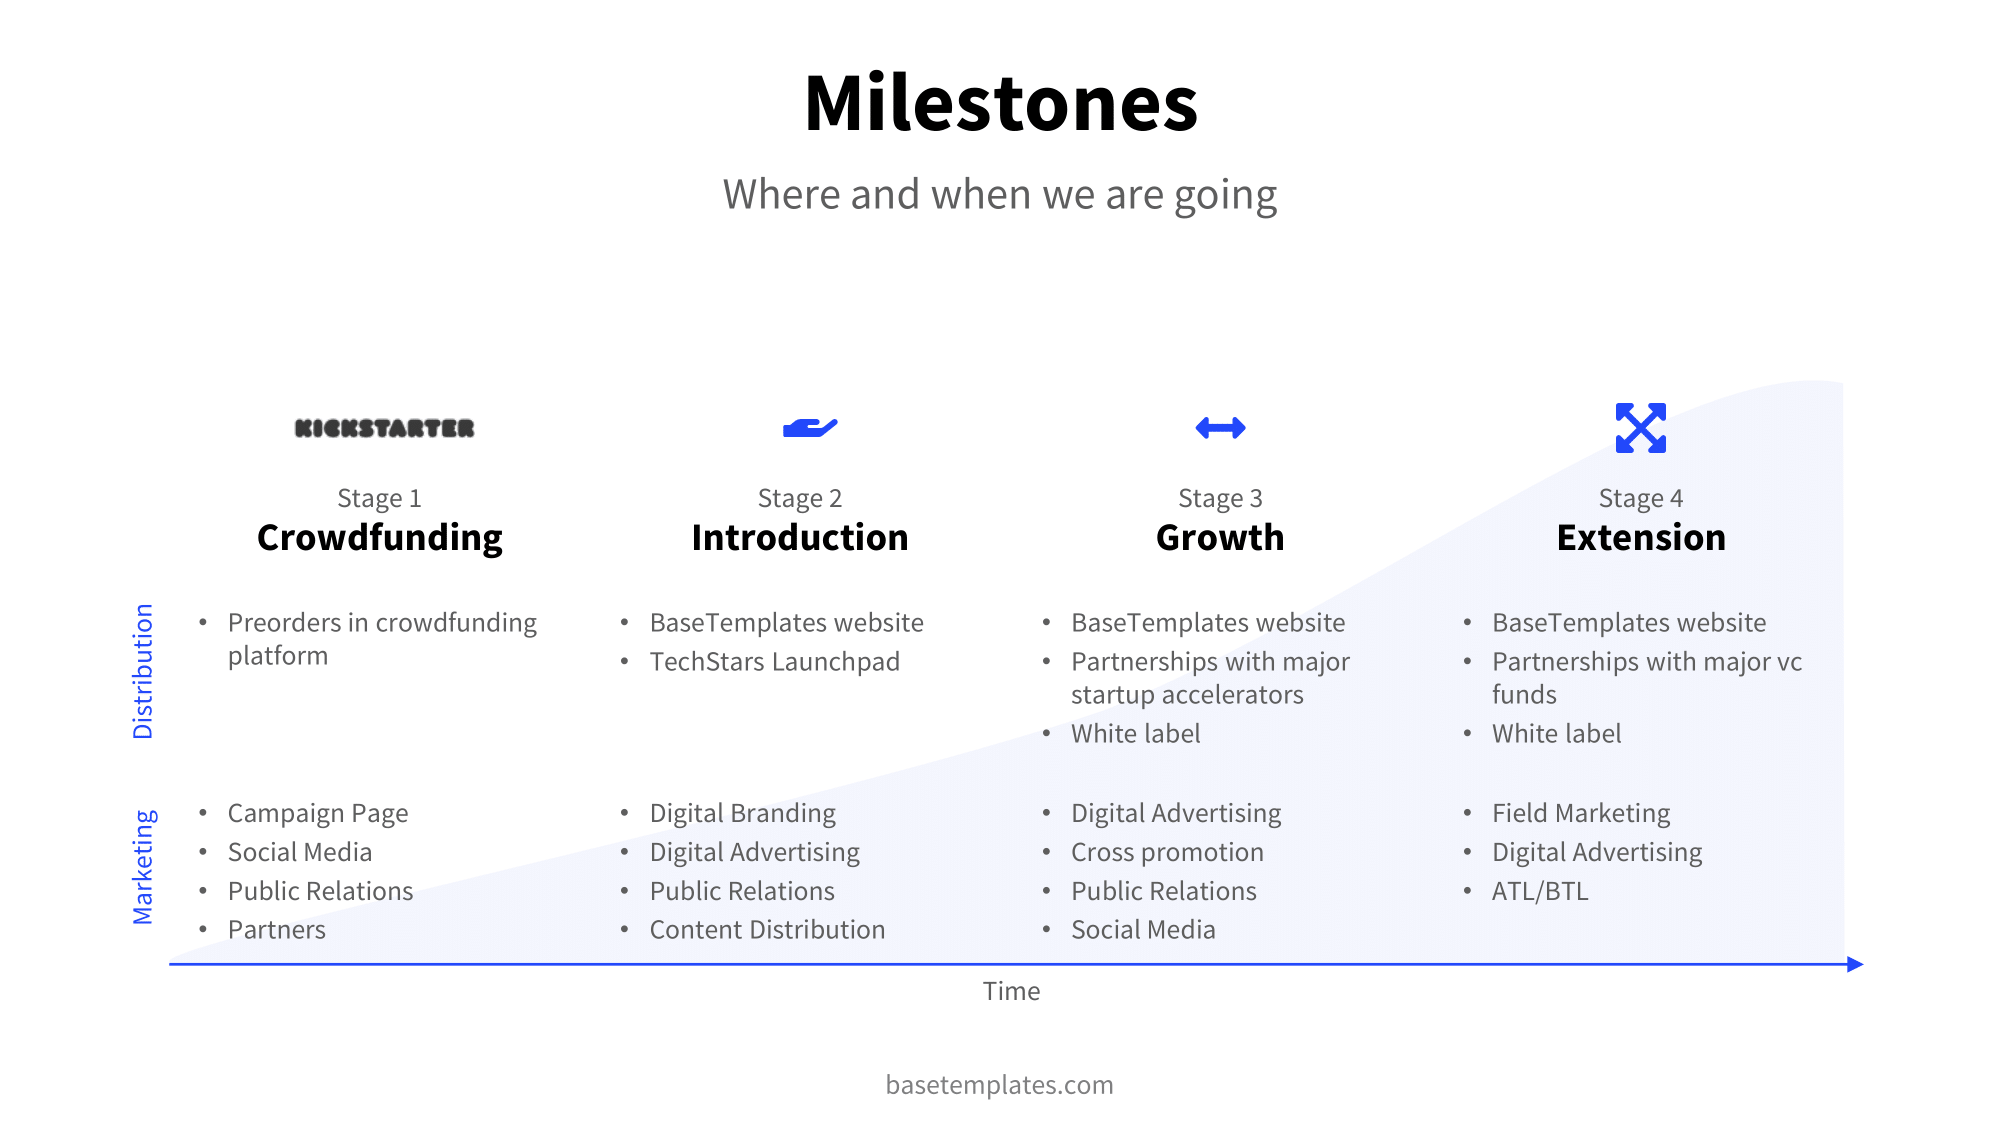 Milestone Slide with detailed information about the next steps